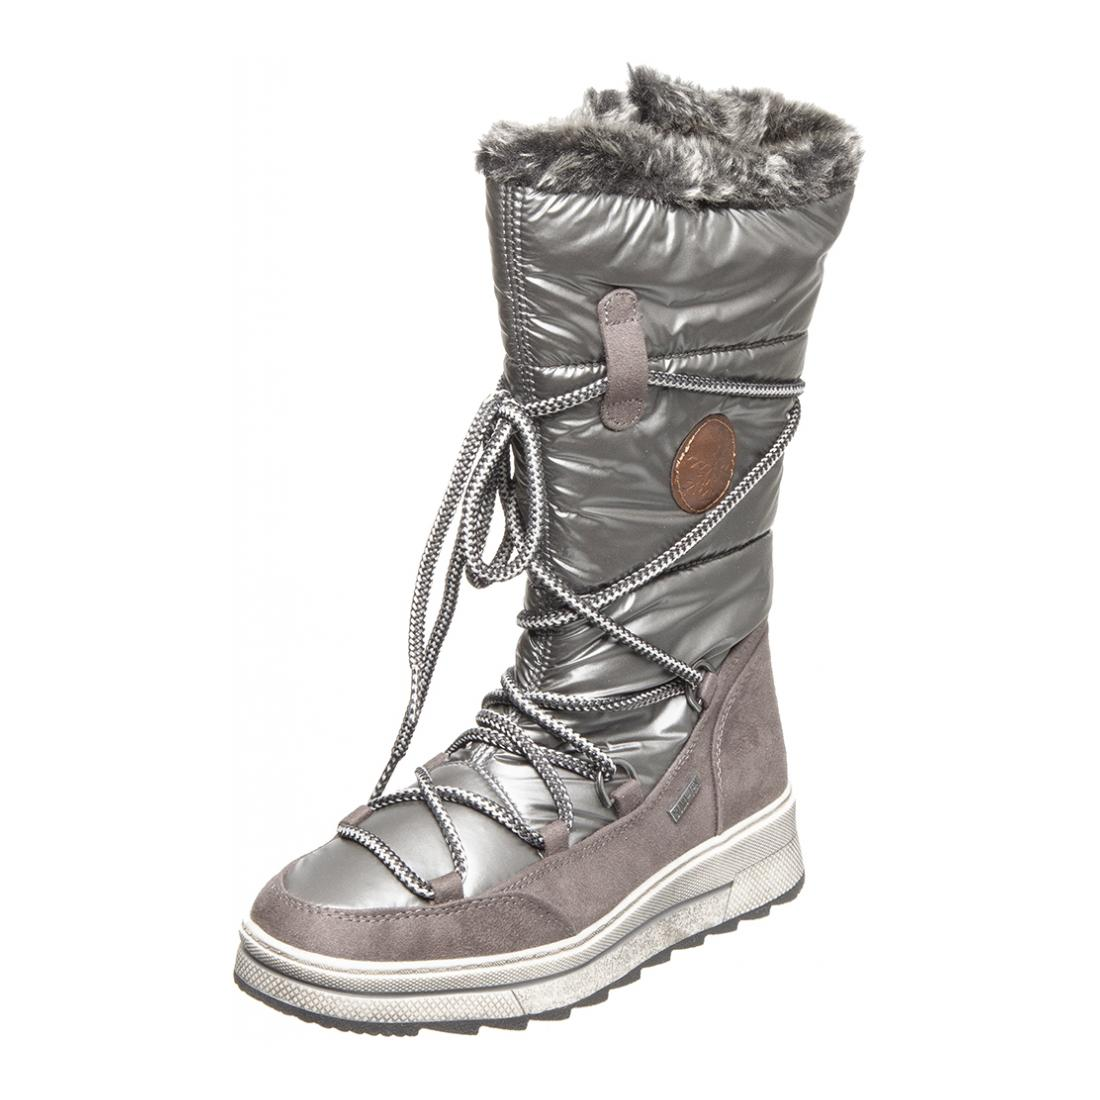 Supremo Winterstiefel grey